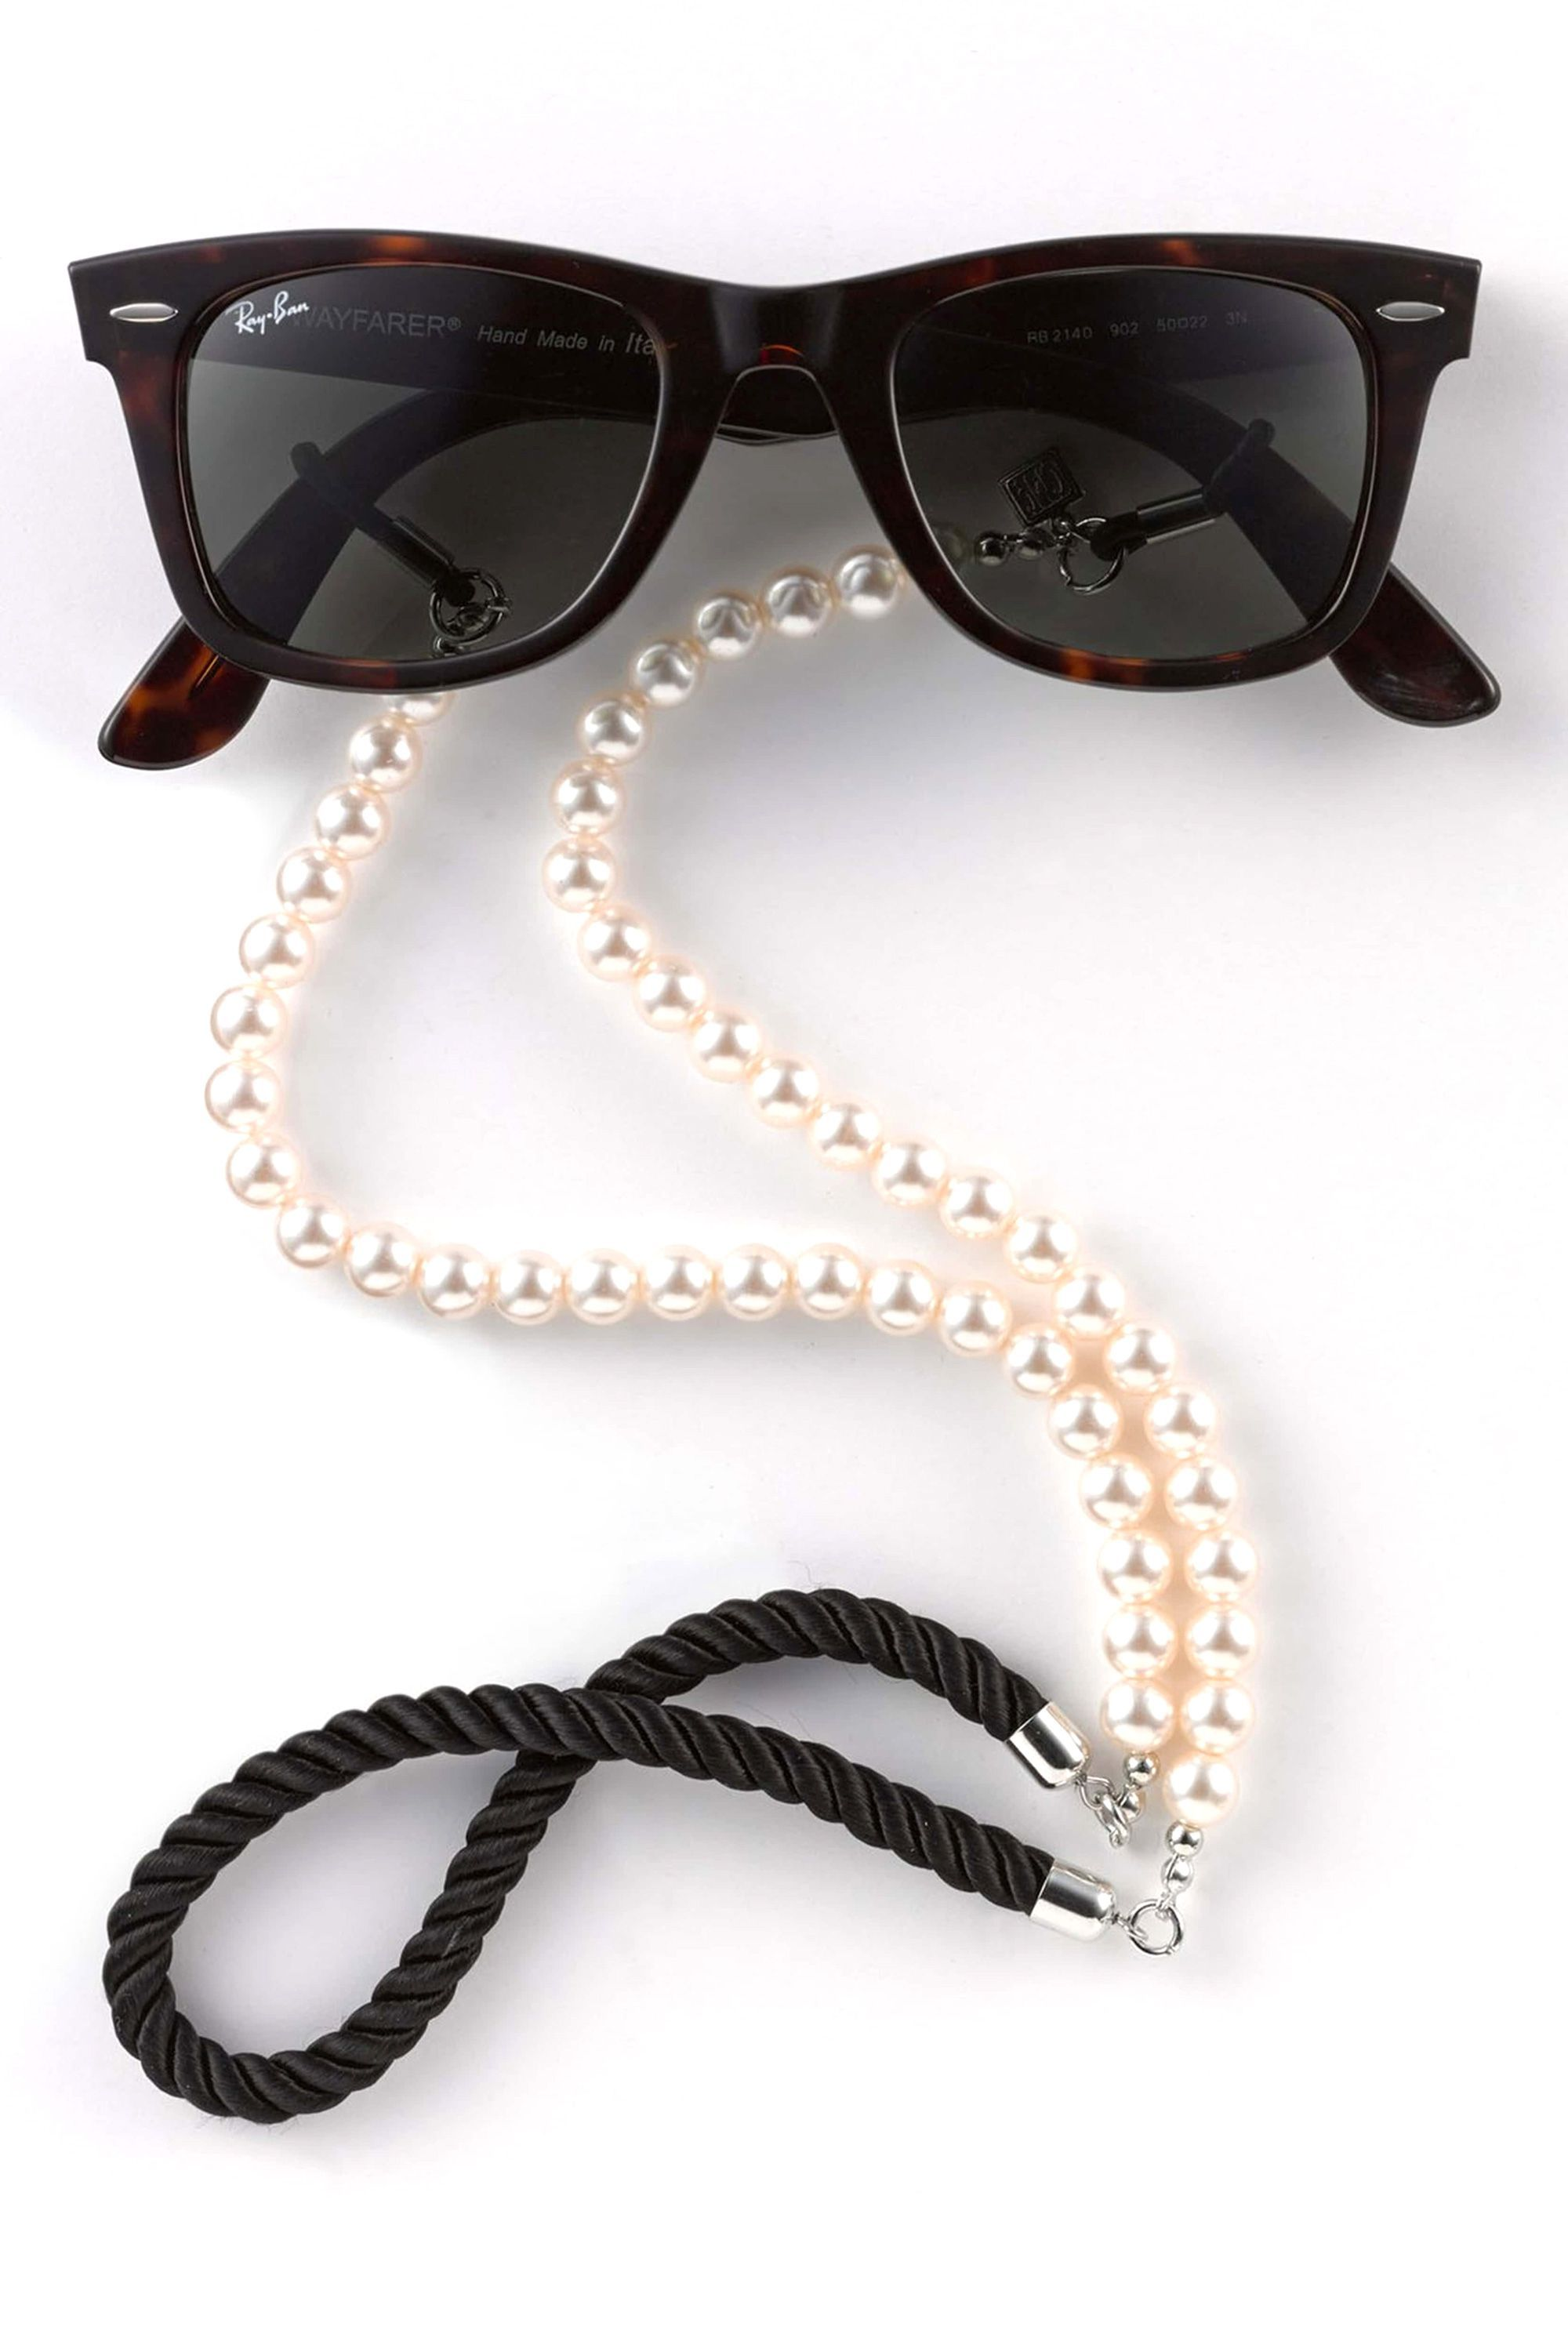 baa51cd50d0 15 Sunglasses Chains for the Person Who Always Loses Their Shades